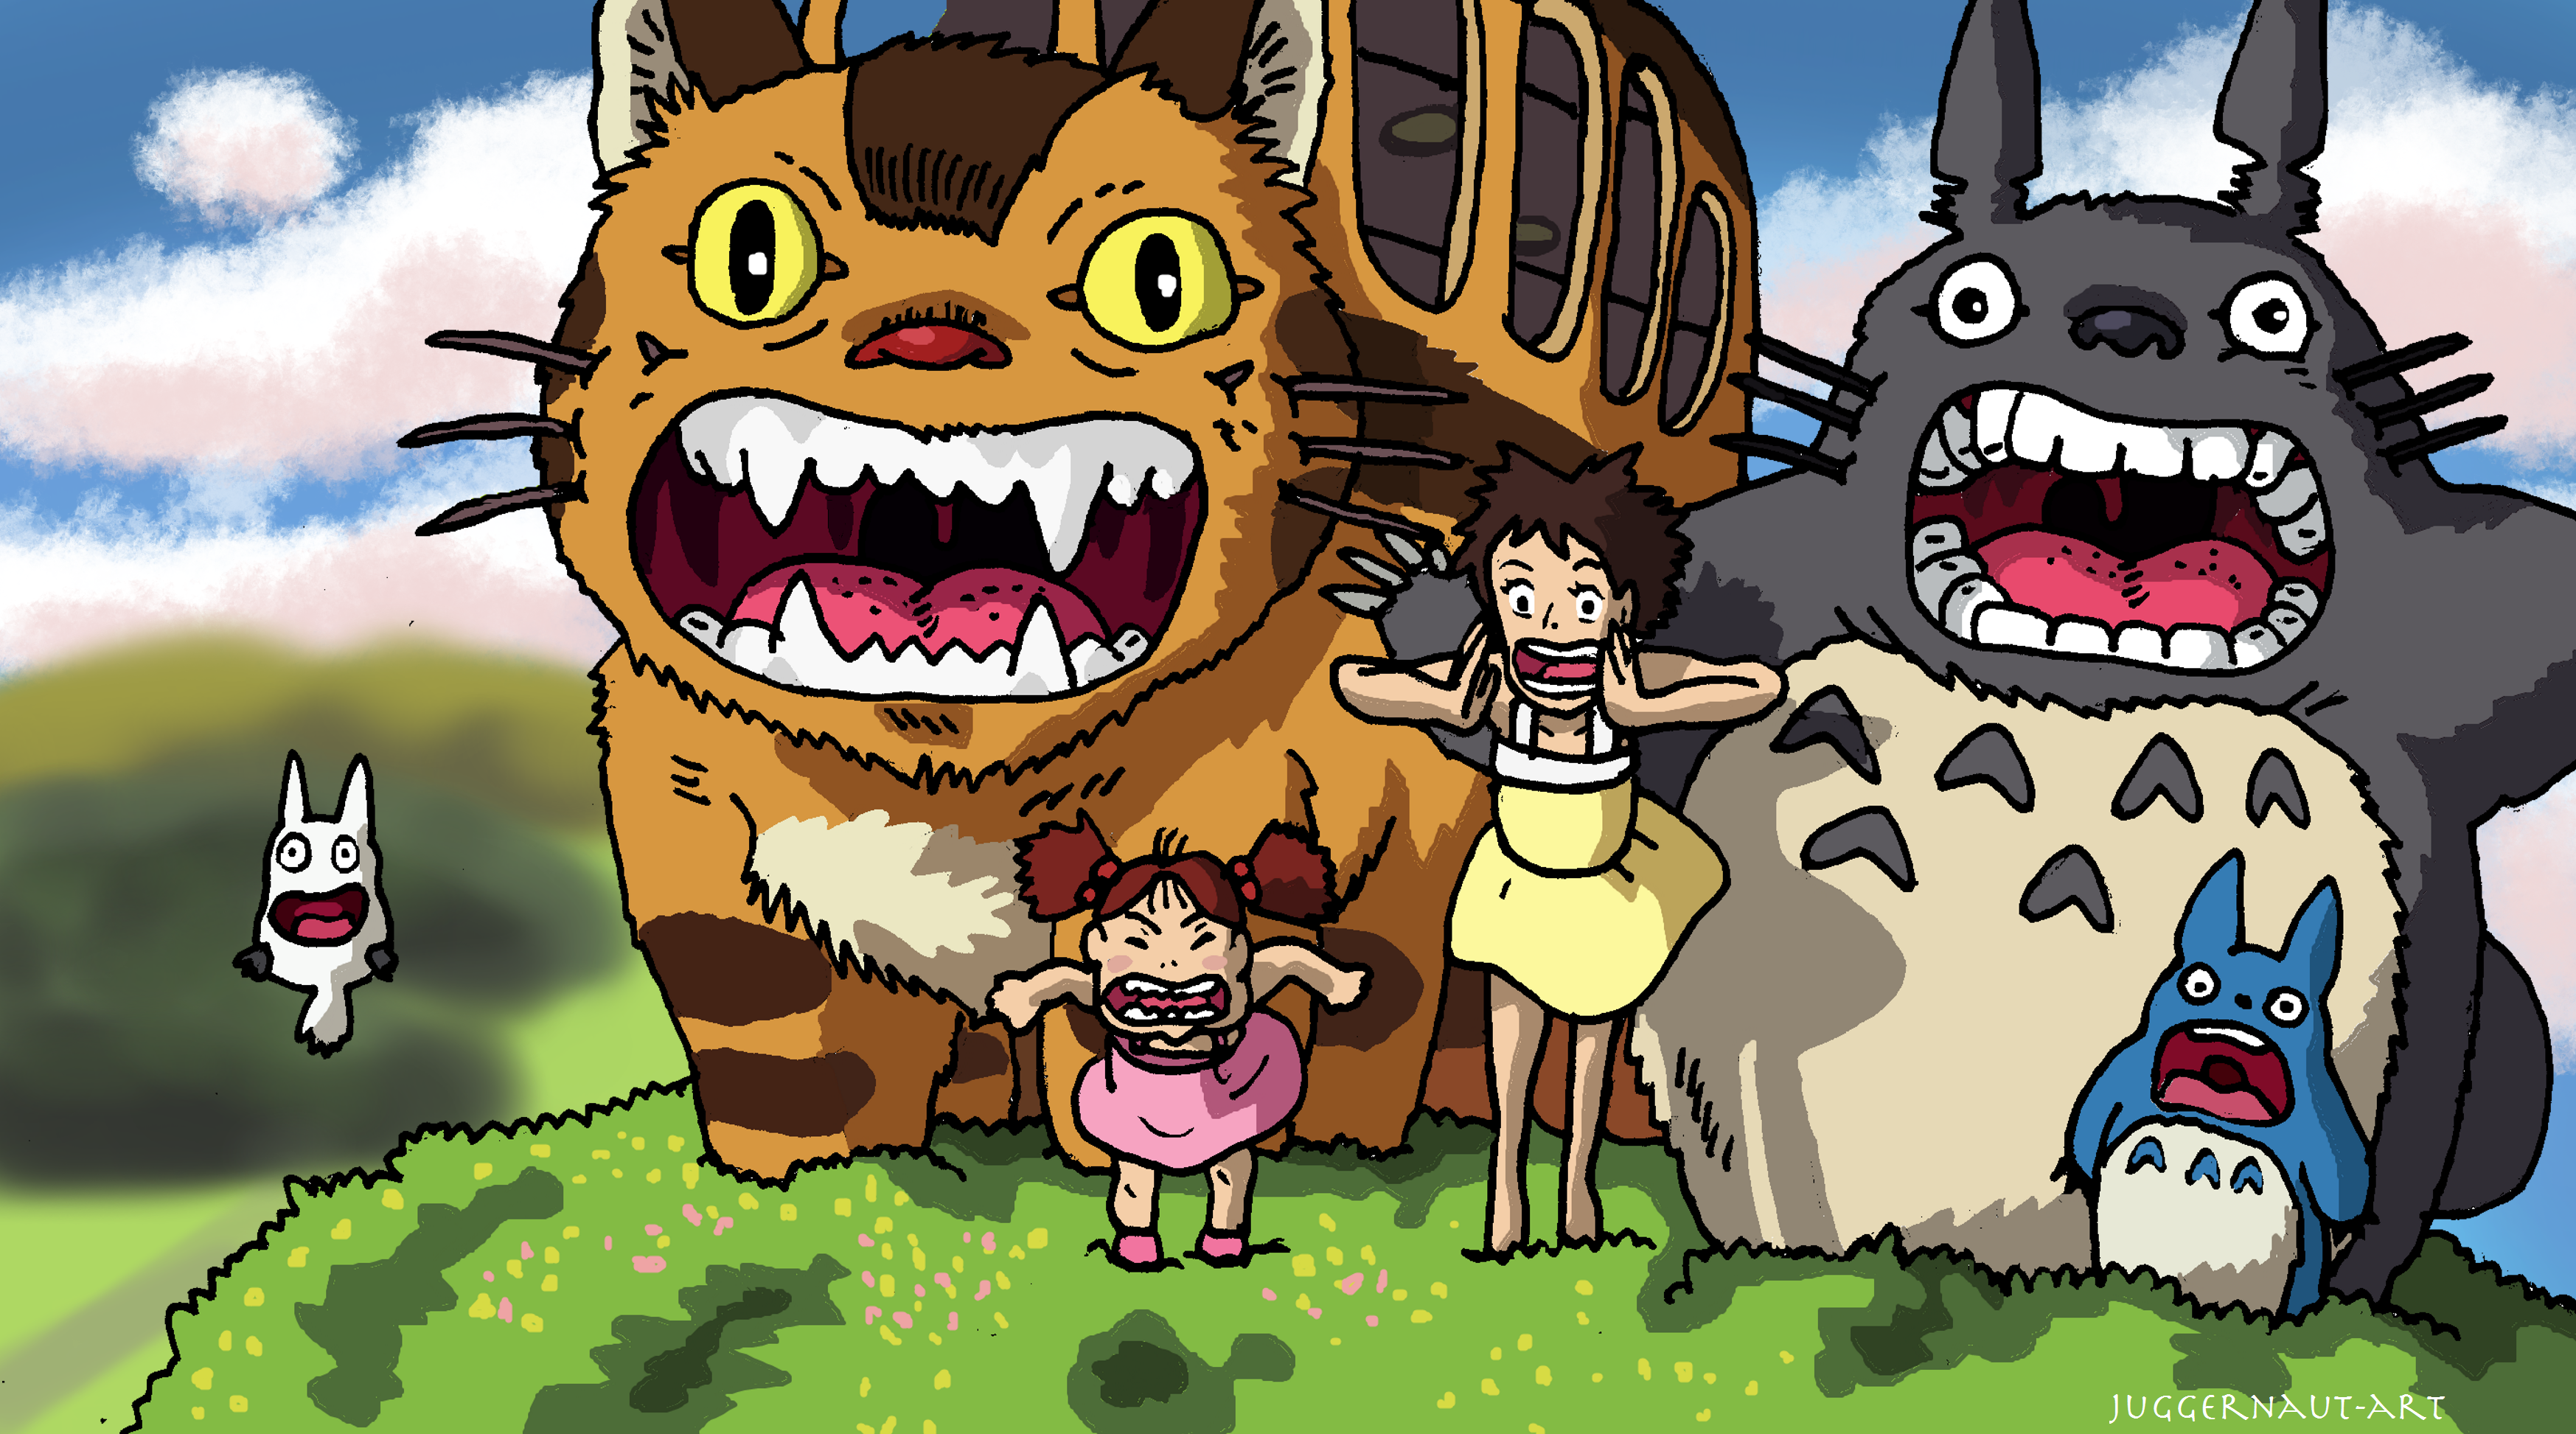 My Neighbor Totoro Roar: Roar At The Wind By Juggernaut-Art On